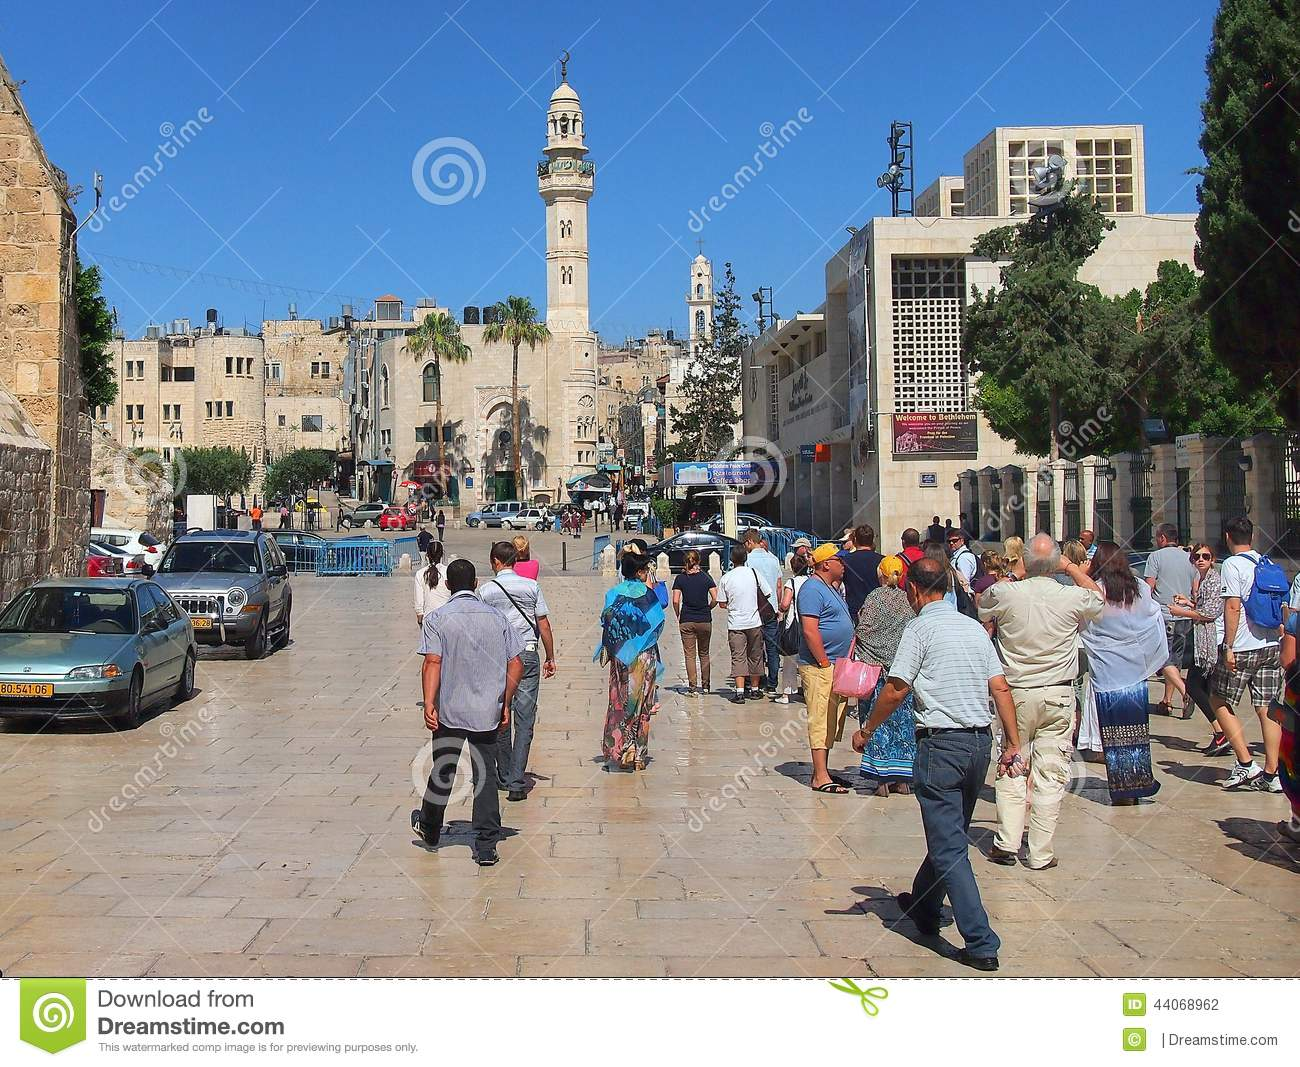 Bethlehem Palestinian  city pictures gallery : Bethlehem on the West Bank, Palestinian Administered Territory.